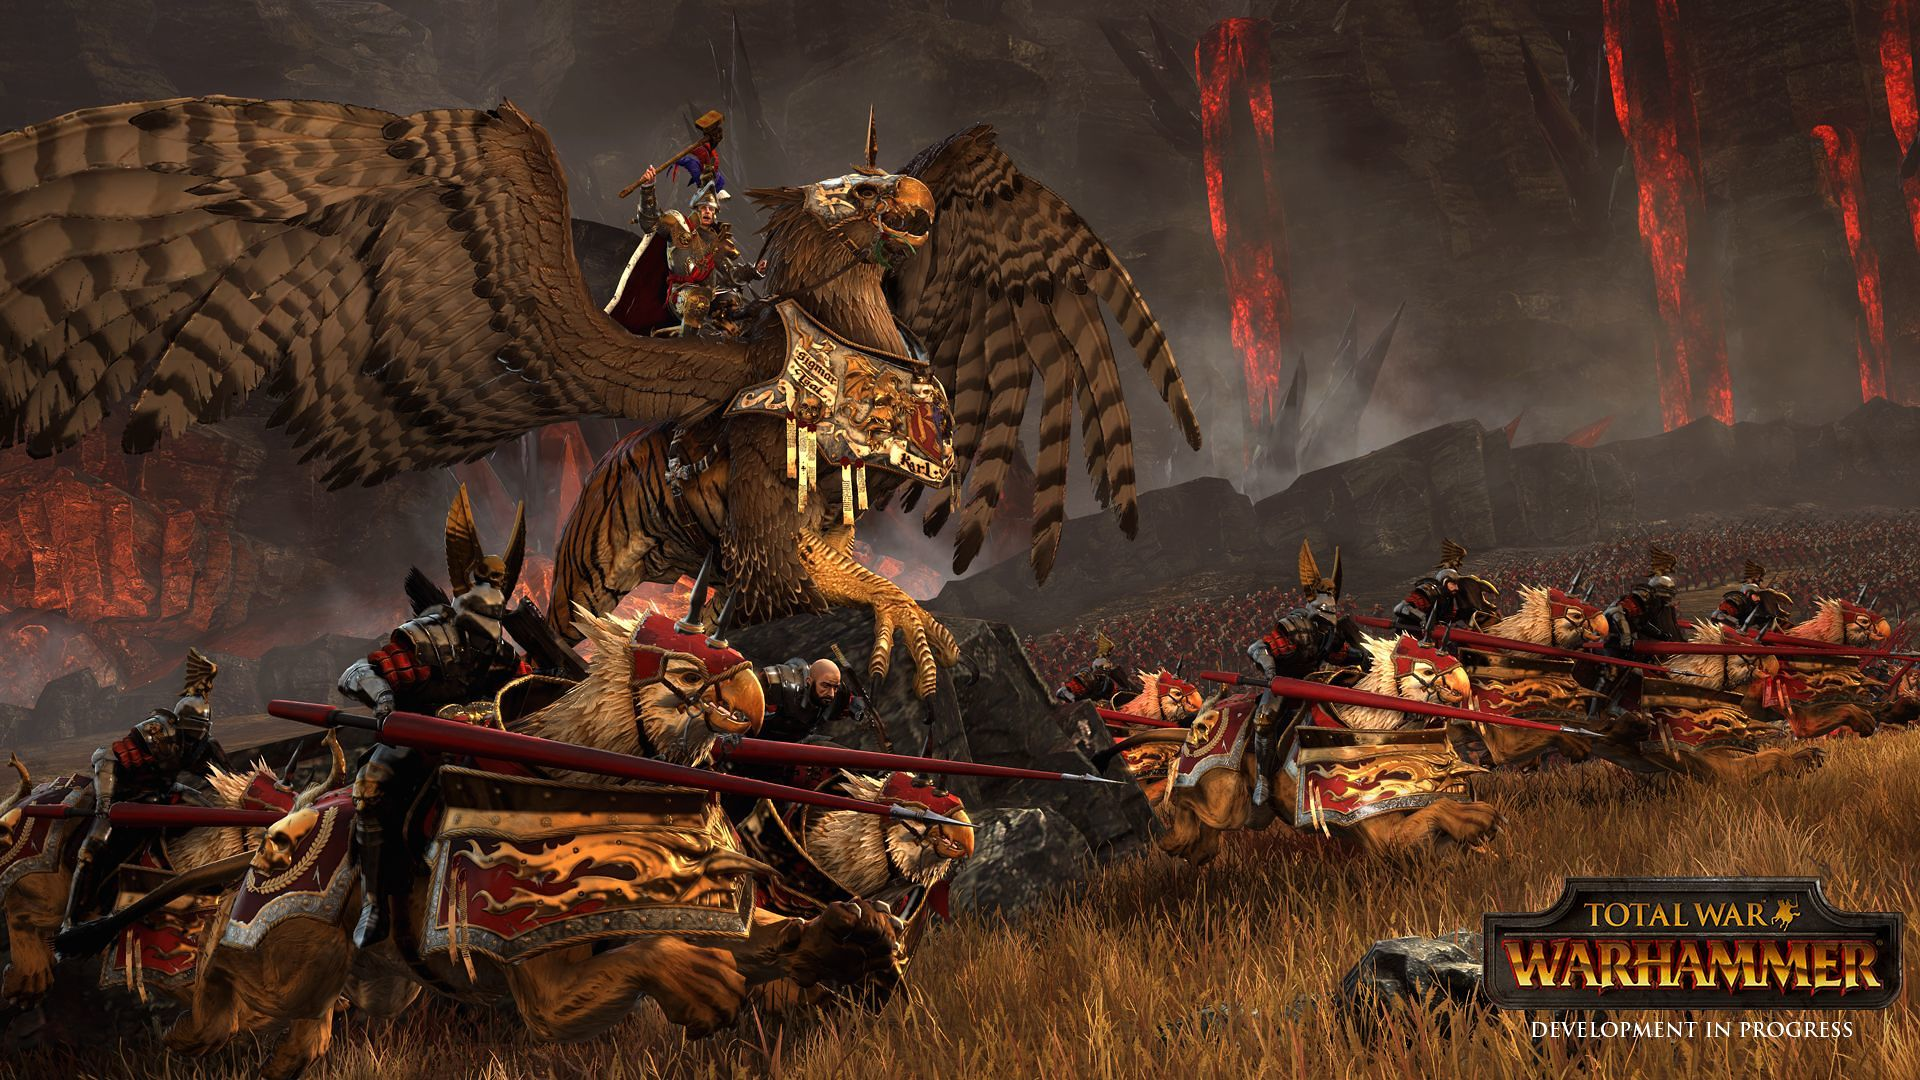 total-war-warhammer-designer-talks-core-factions-chaos-warriors-lack-of-mod-support-695537